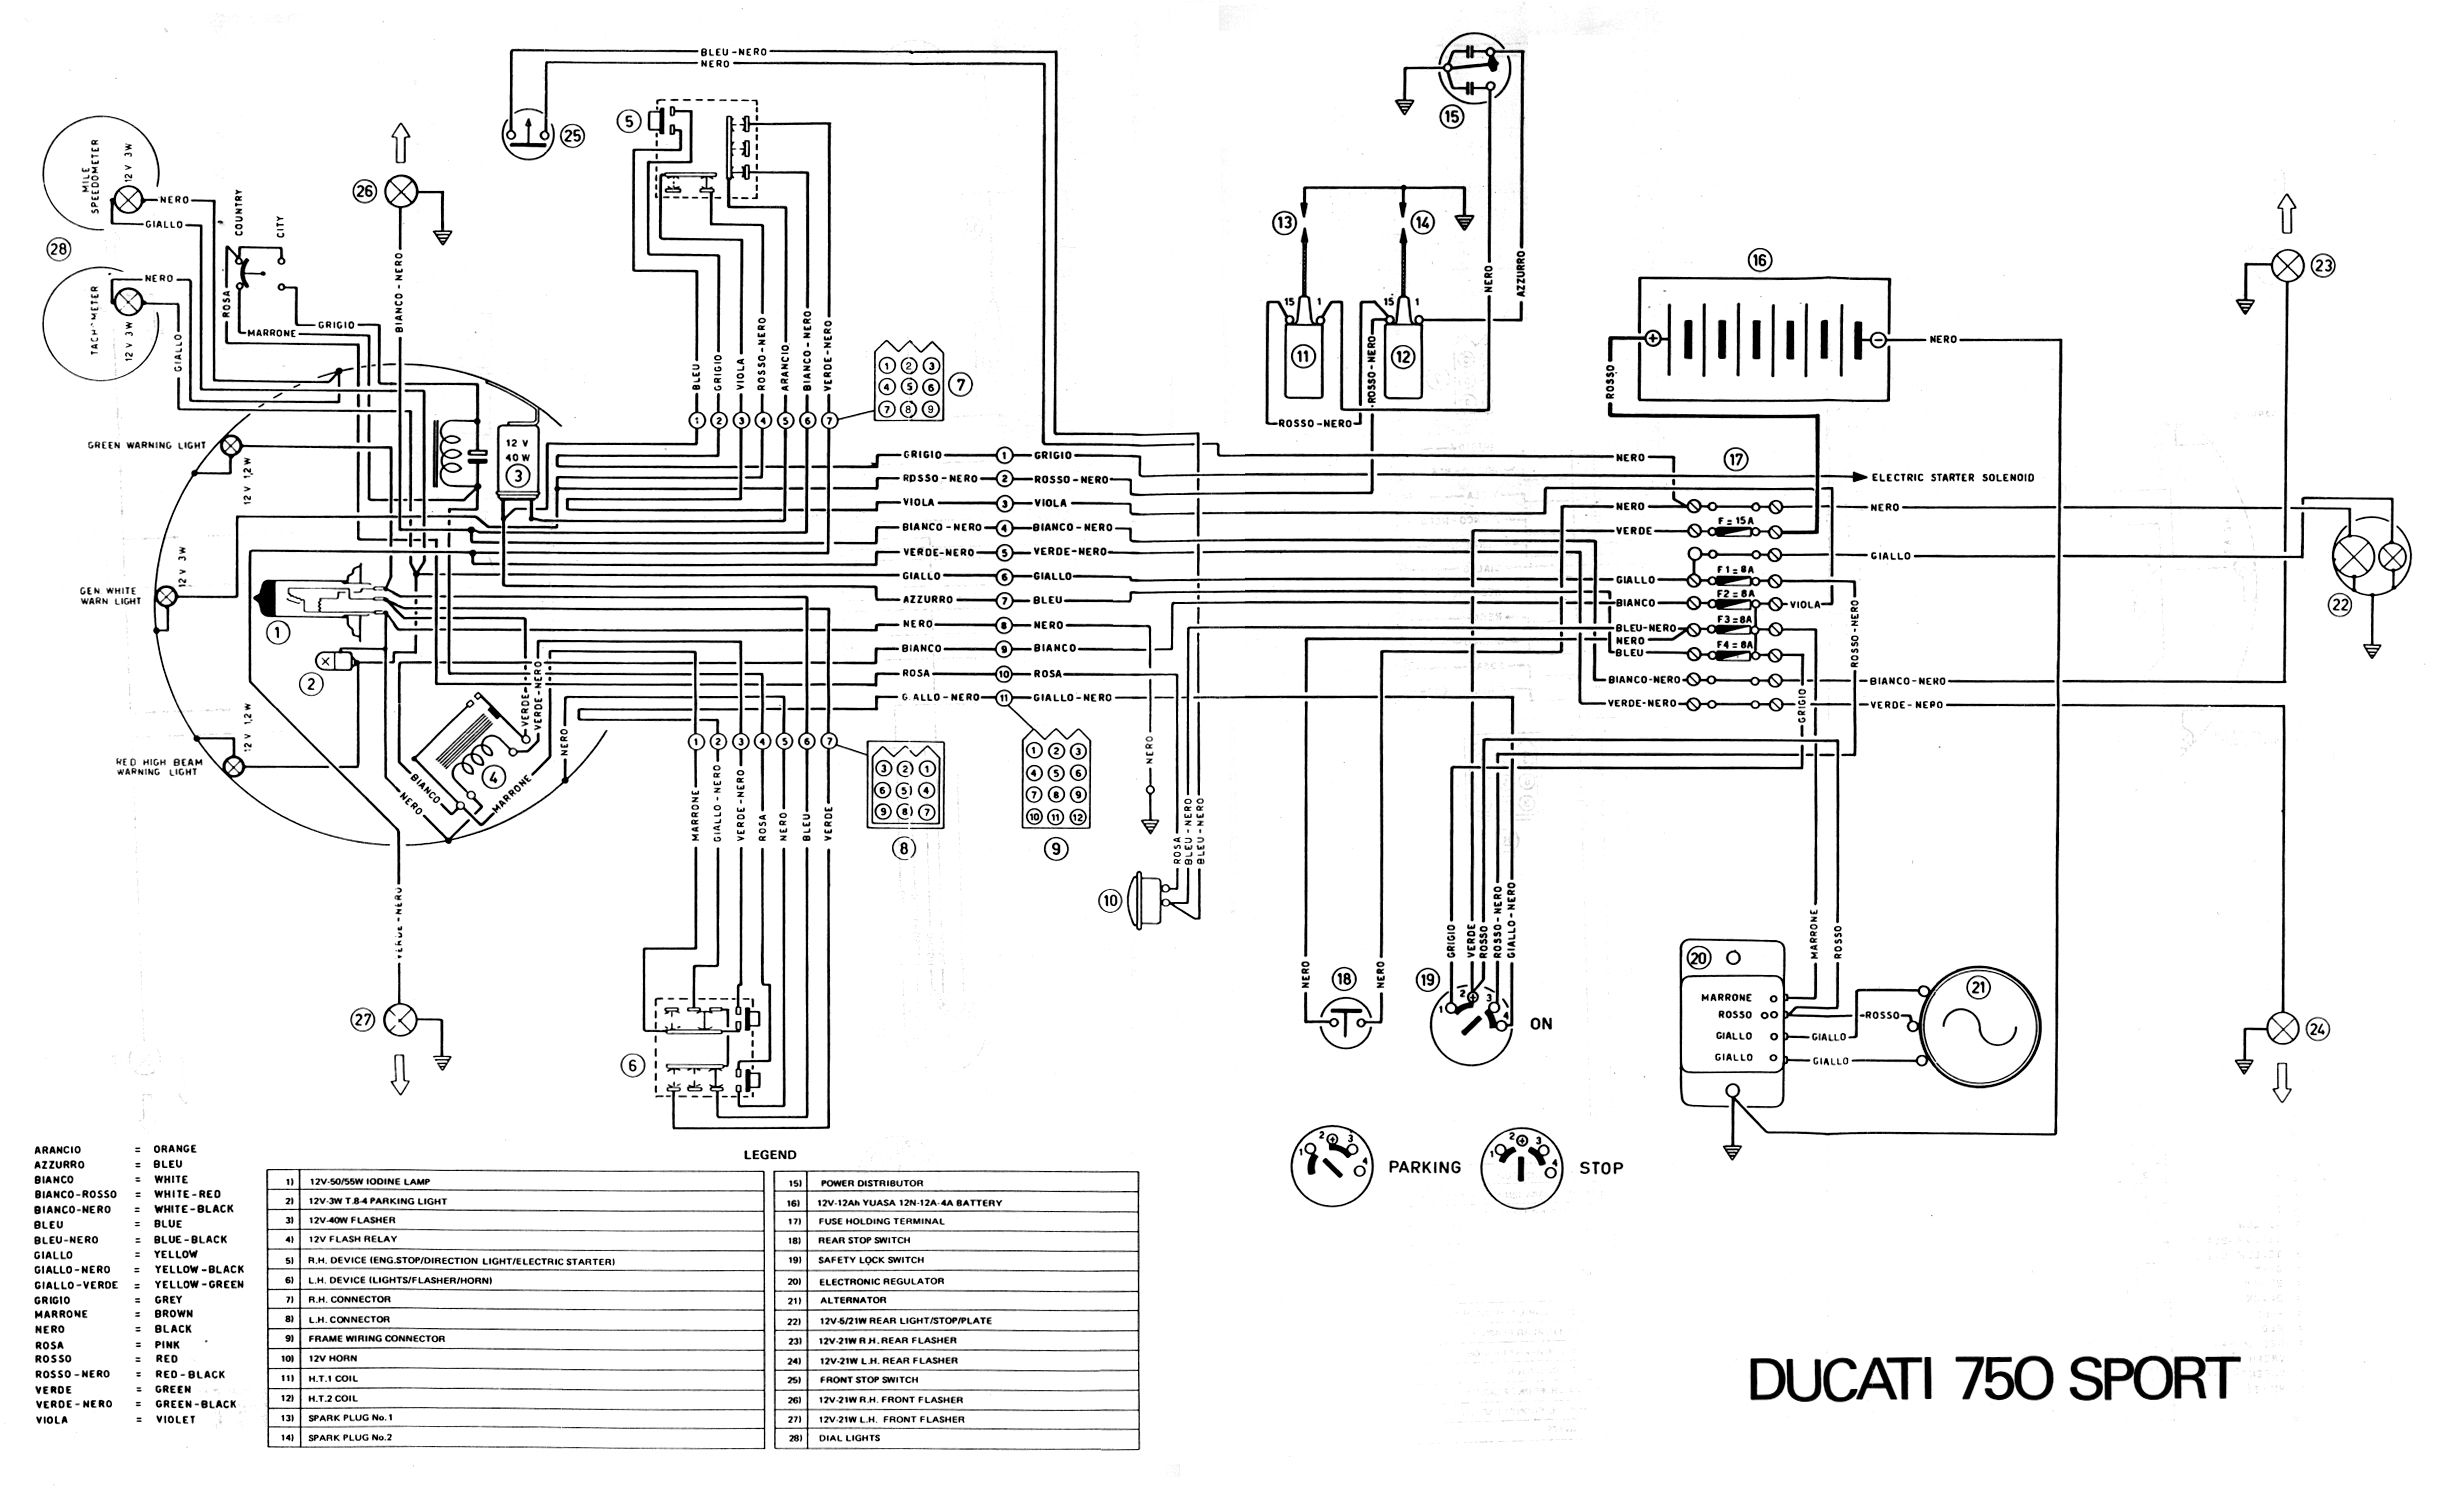 Ducati 250cc Wiring Diagram besides Ducati Engine Diagram in addition Panterra Street Scooter Wiring Diagram together with Mazda Heater Hoses Diagram together with Viair Relay Wiring Diagram Viair 40043 4 00p Portable  pressor. on ducati 848 wiring diagram electrical schematic